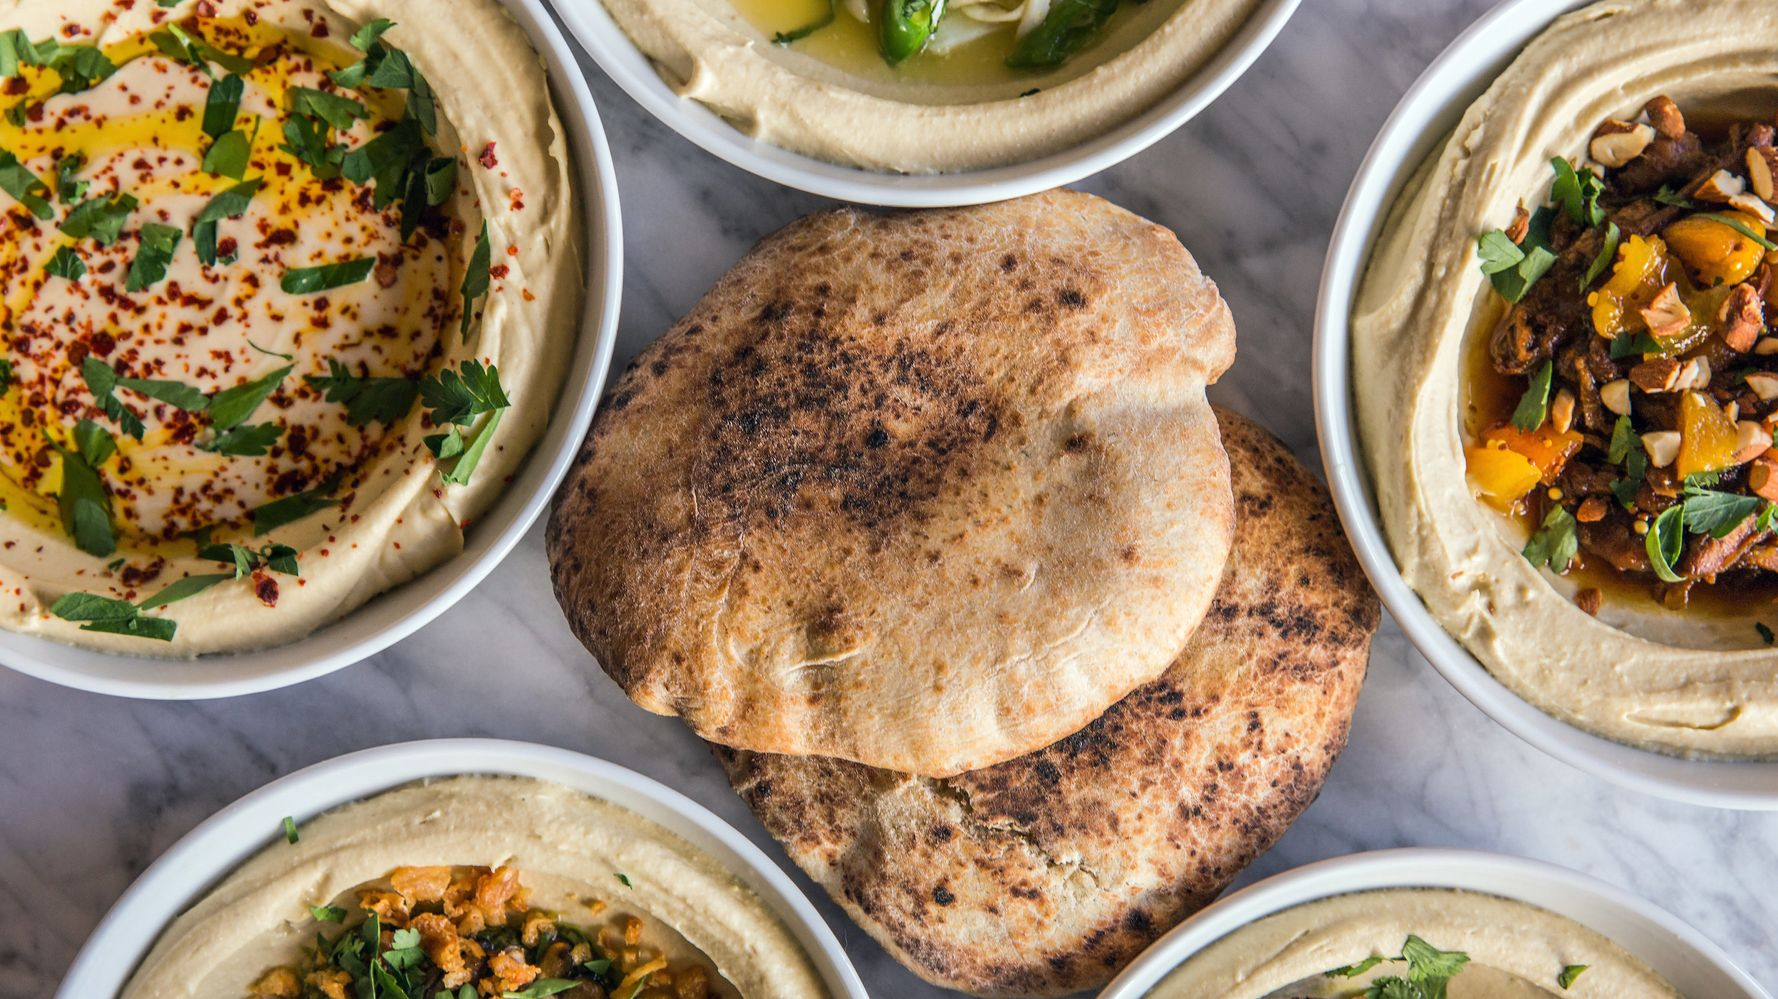 what to eat with hummus when on diet